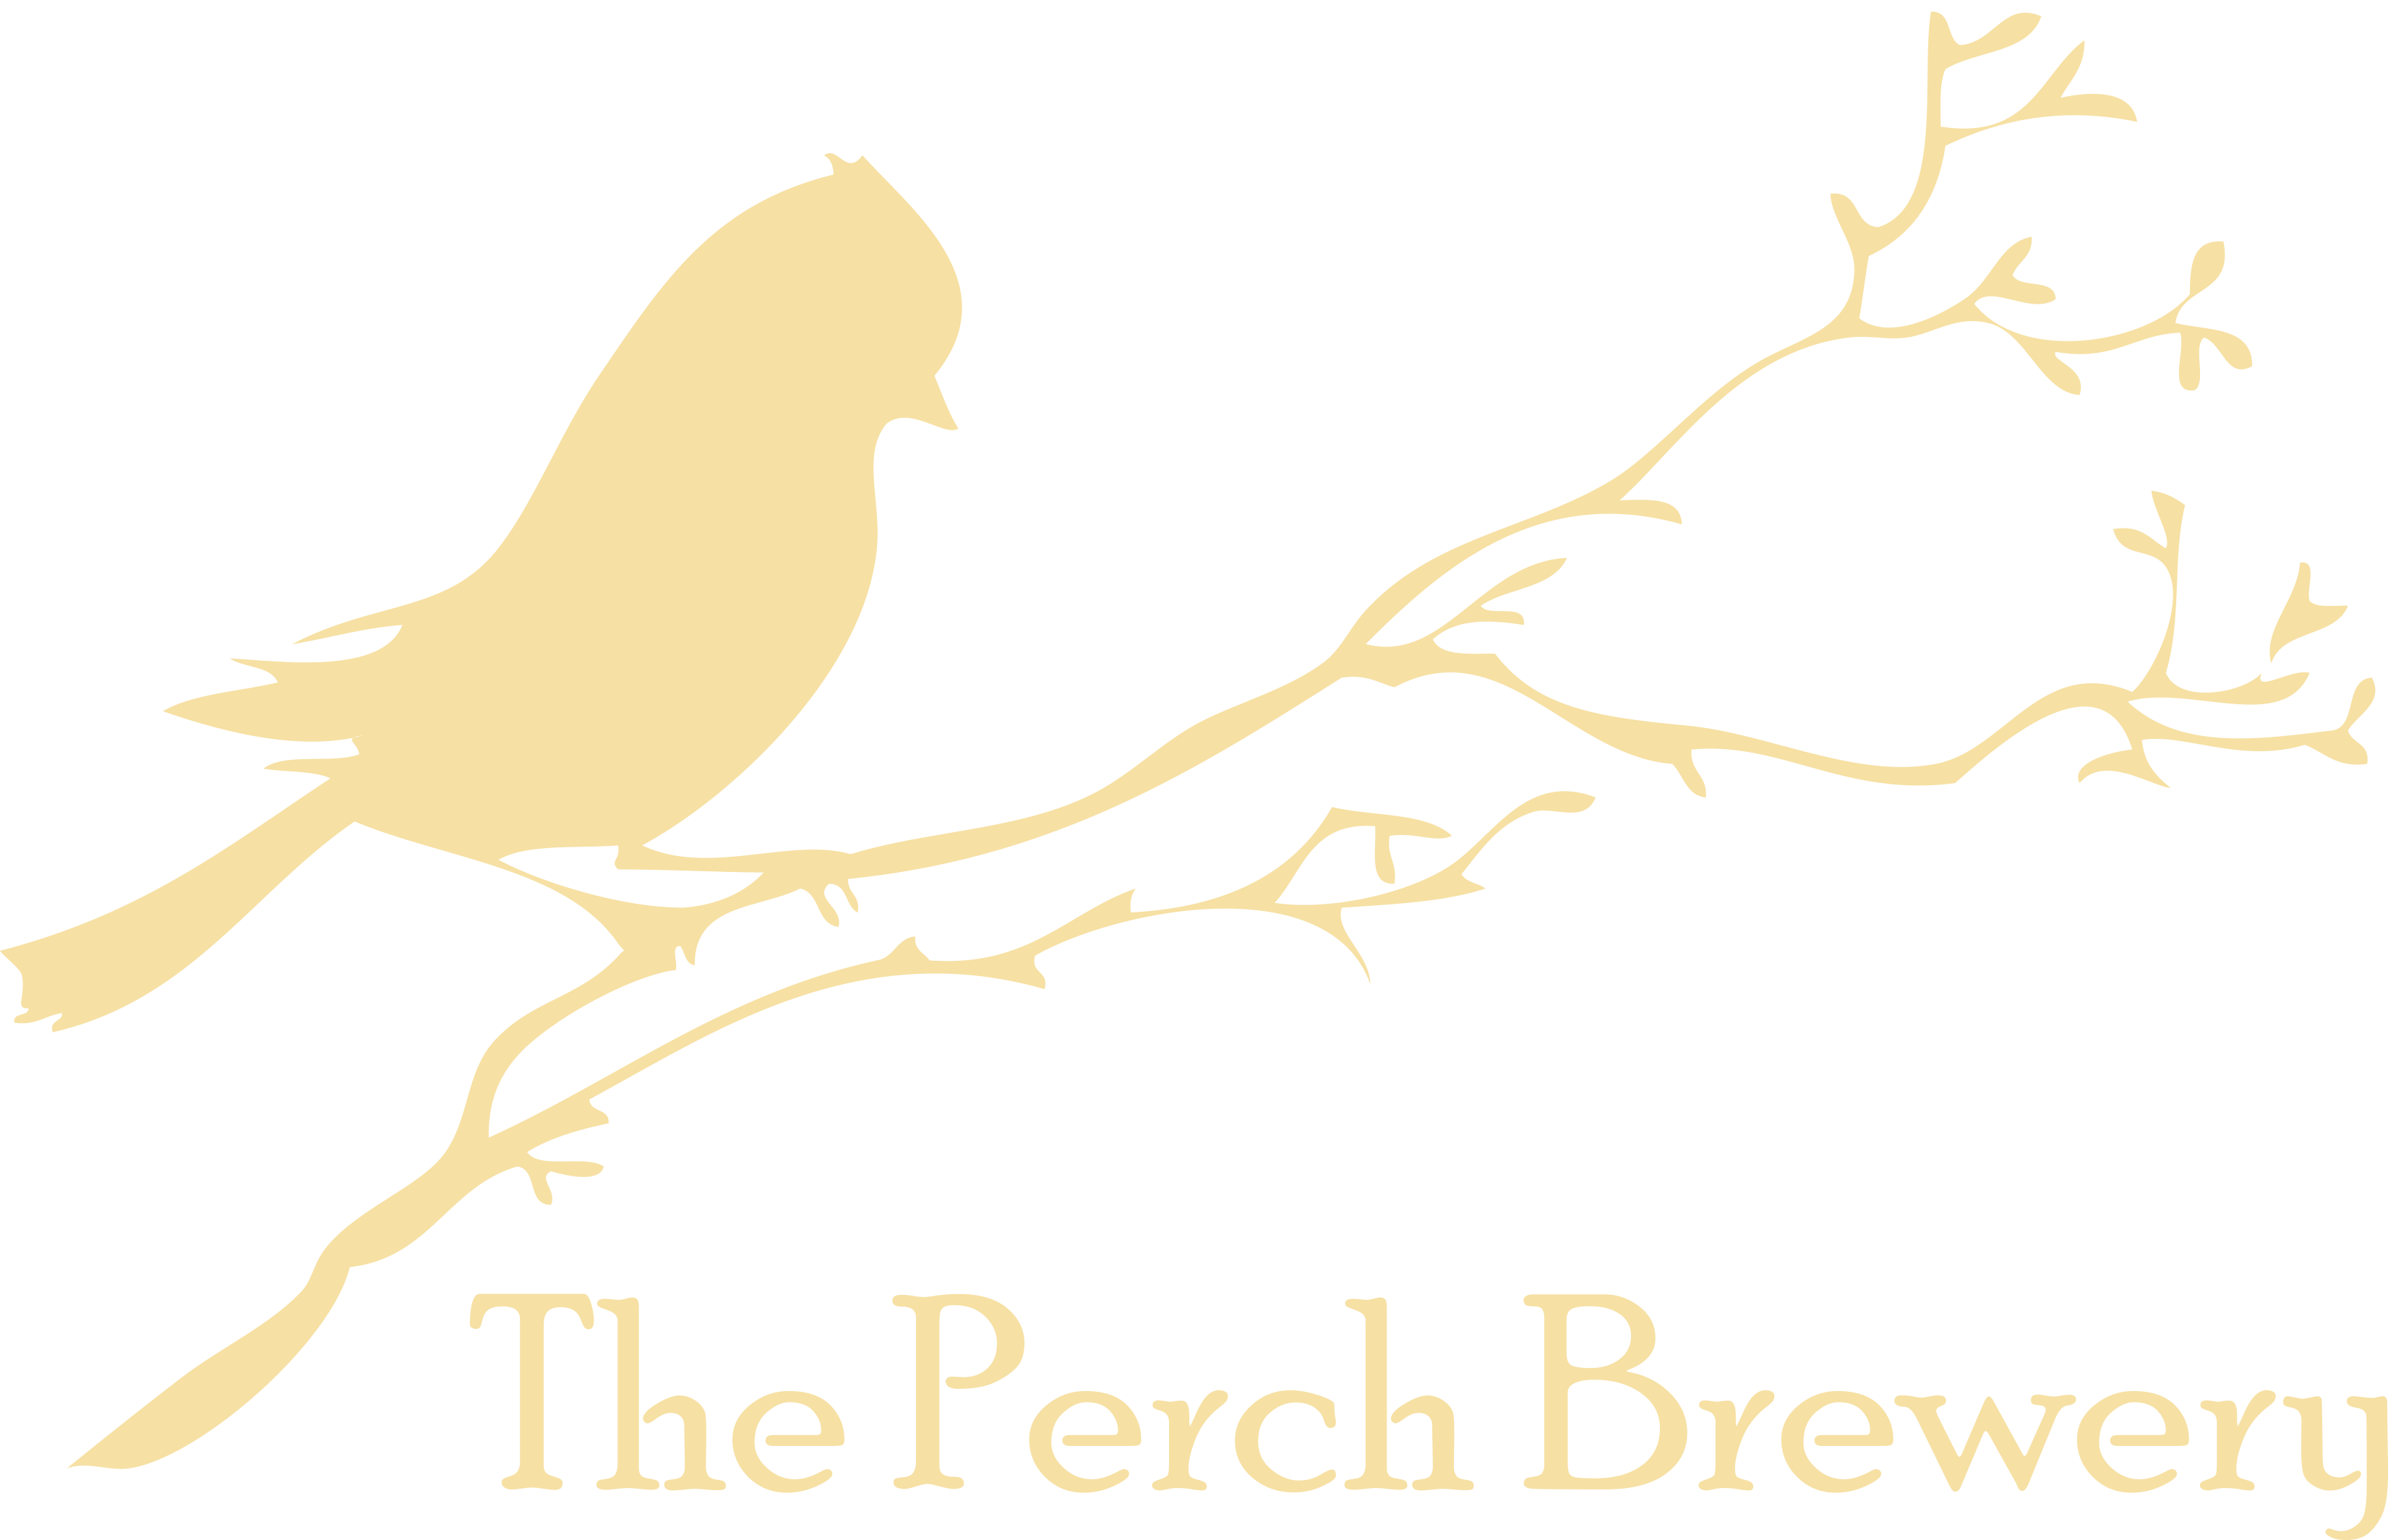 The brewery craft beer. Parrot clipart perch